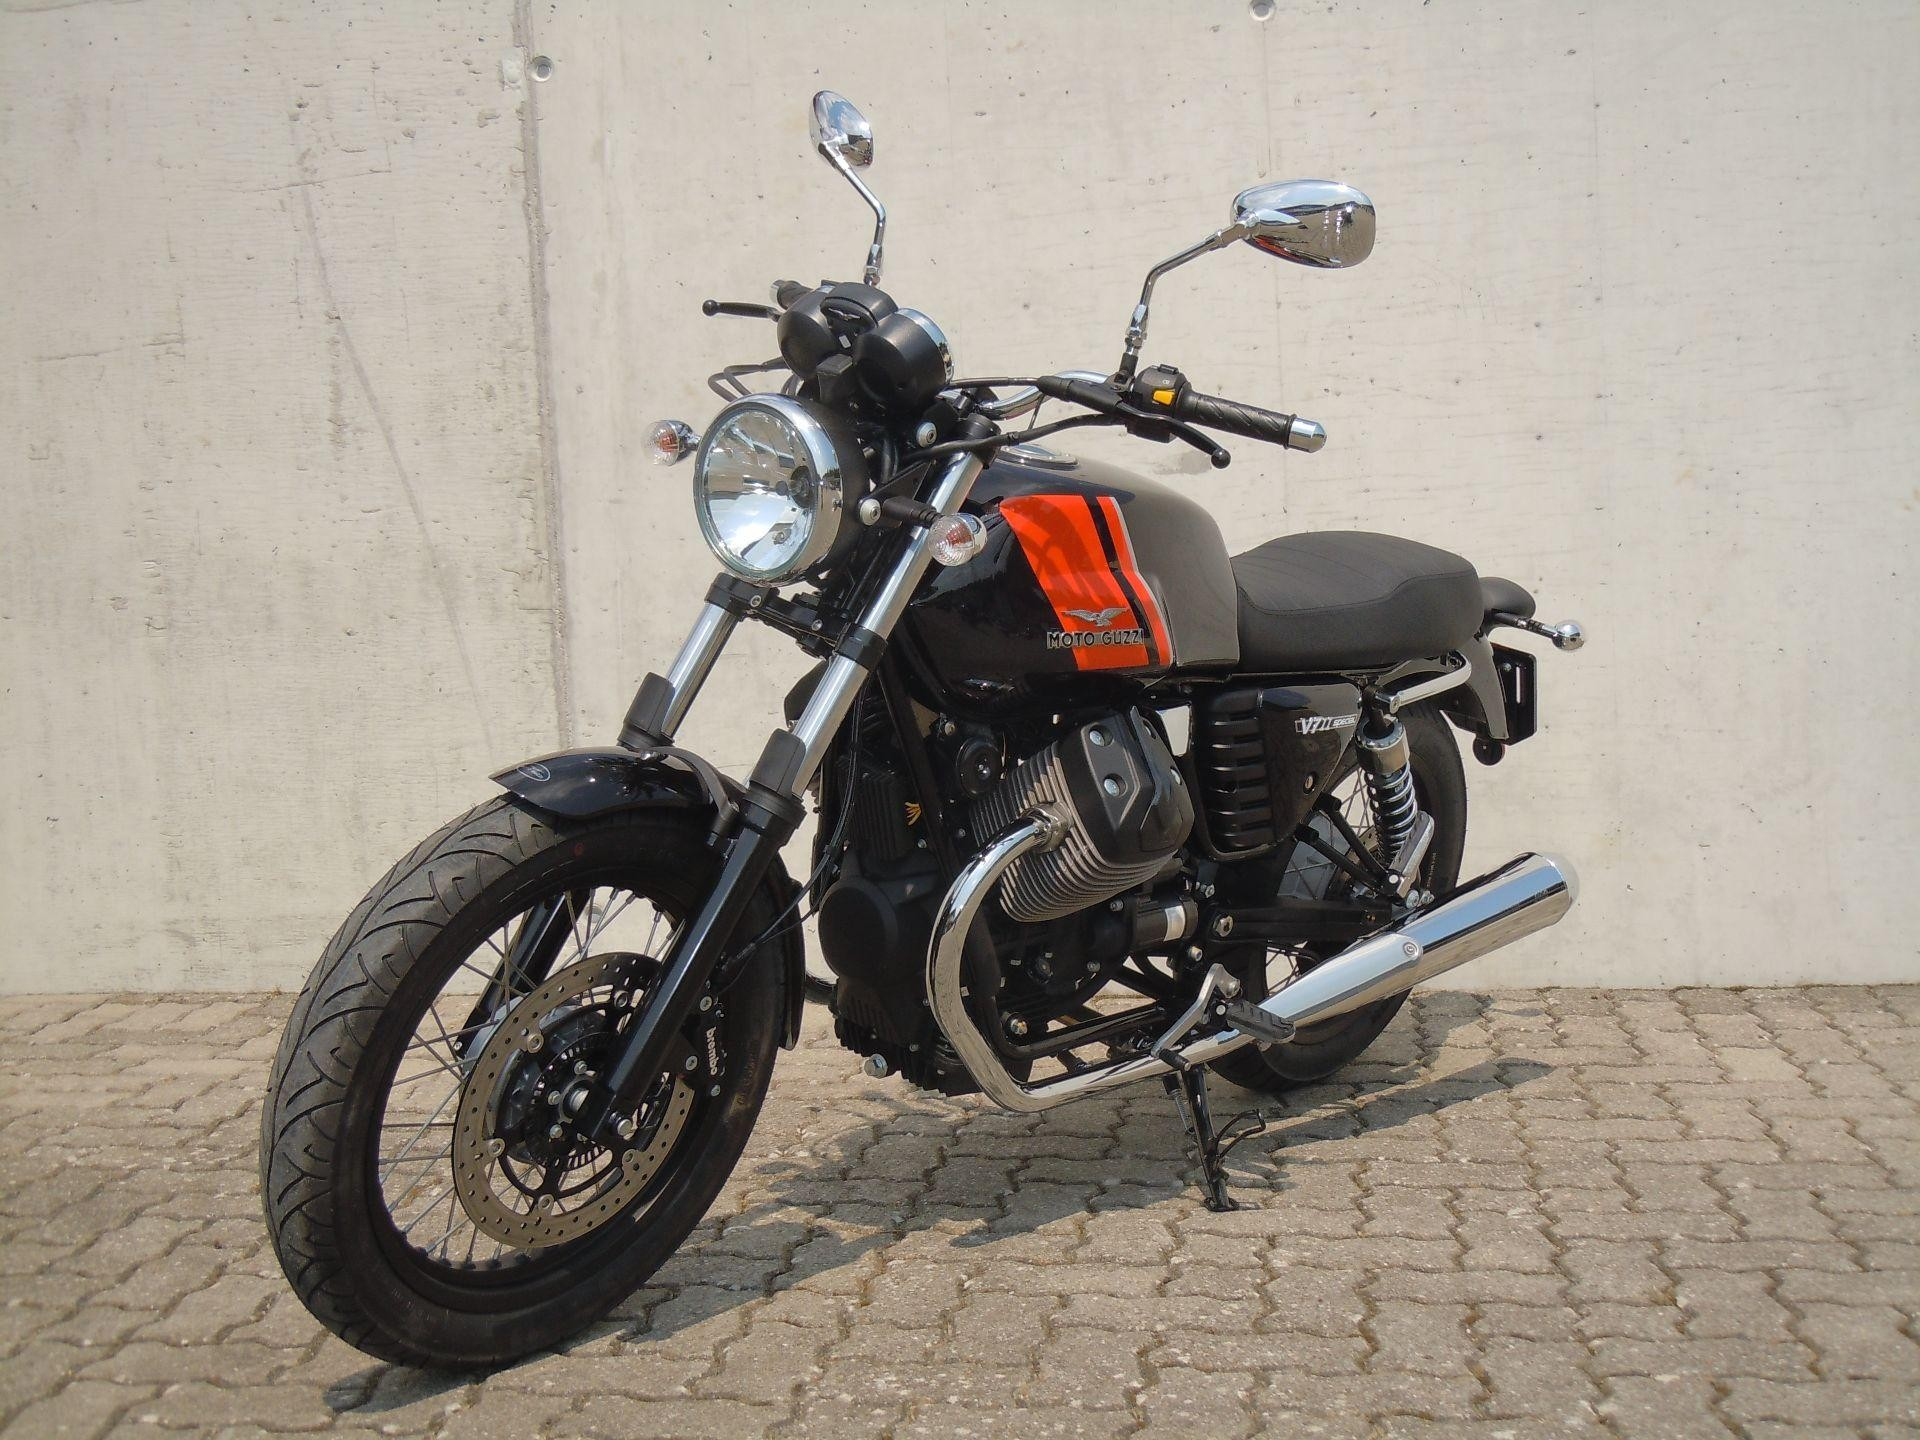 Buy motorbike New vehicle/bike MOTO GUZZI V7 Special ABS V7 II Rolf ...